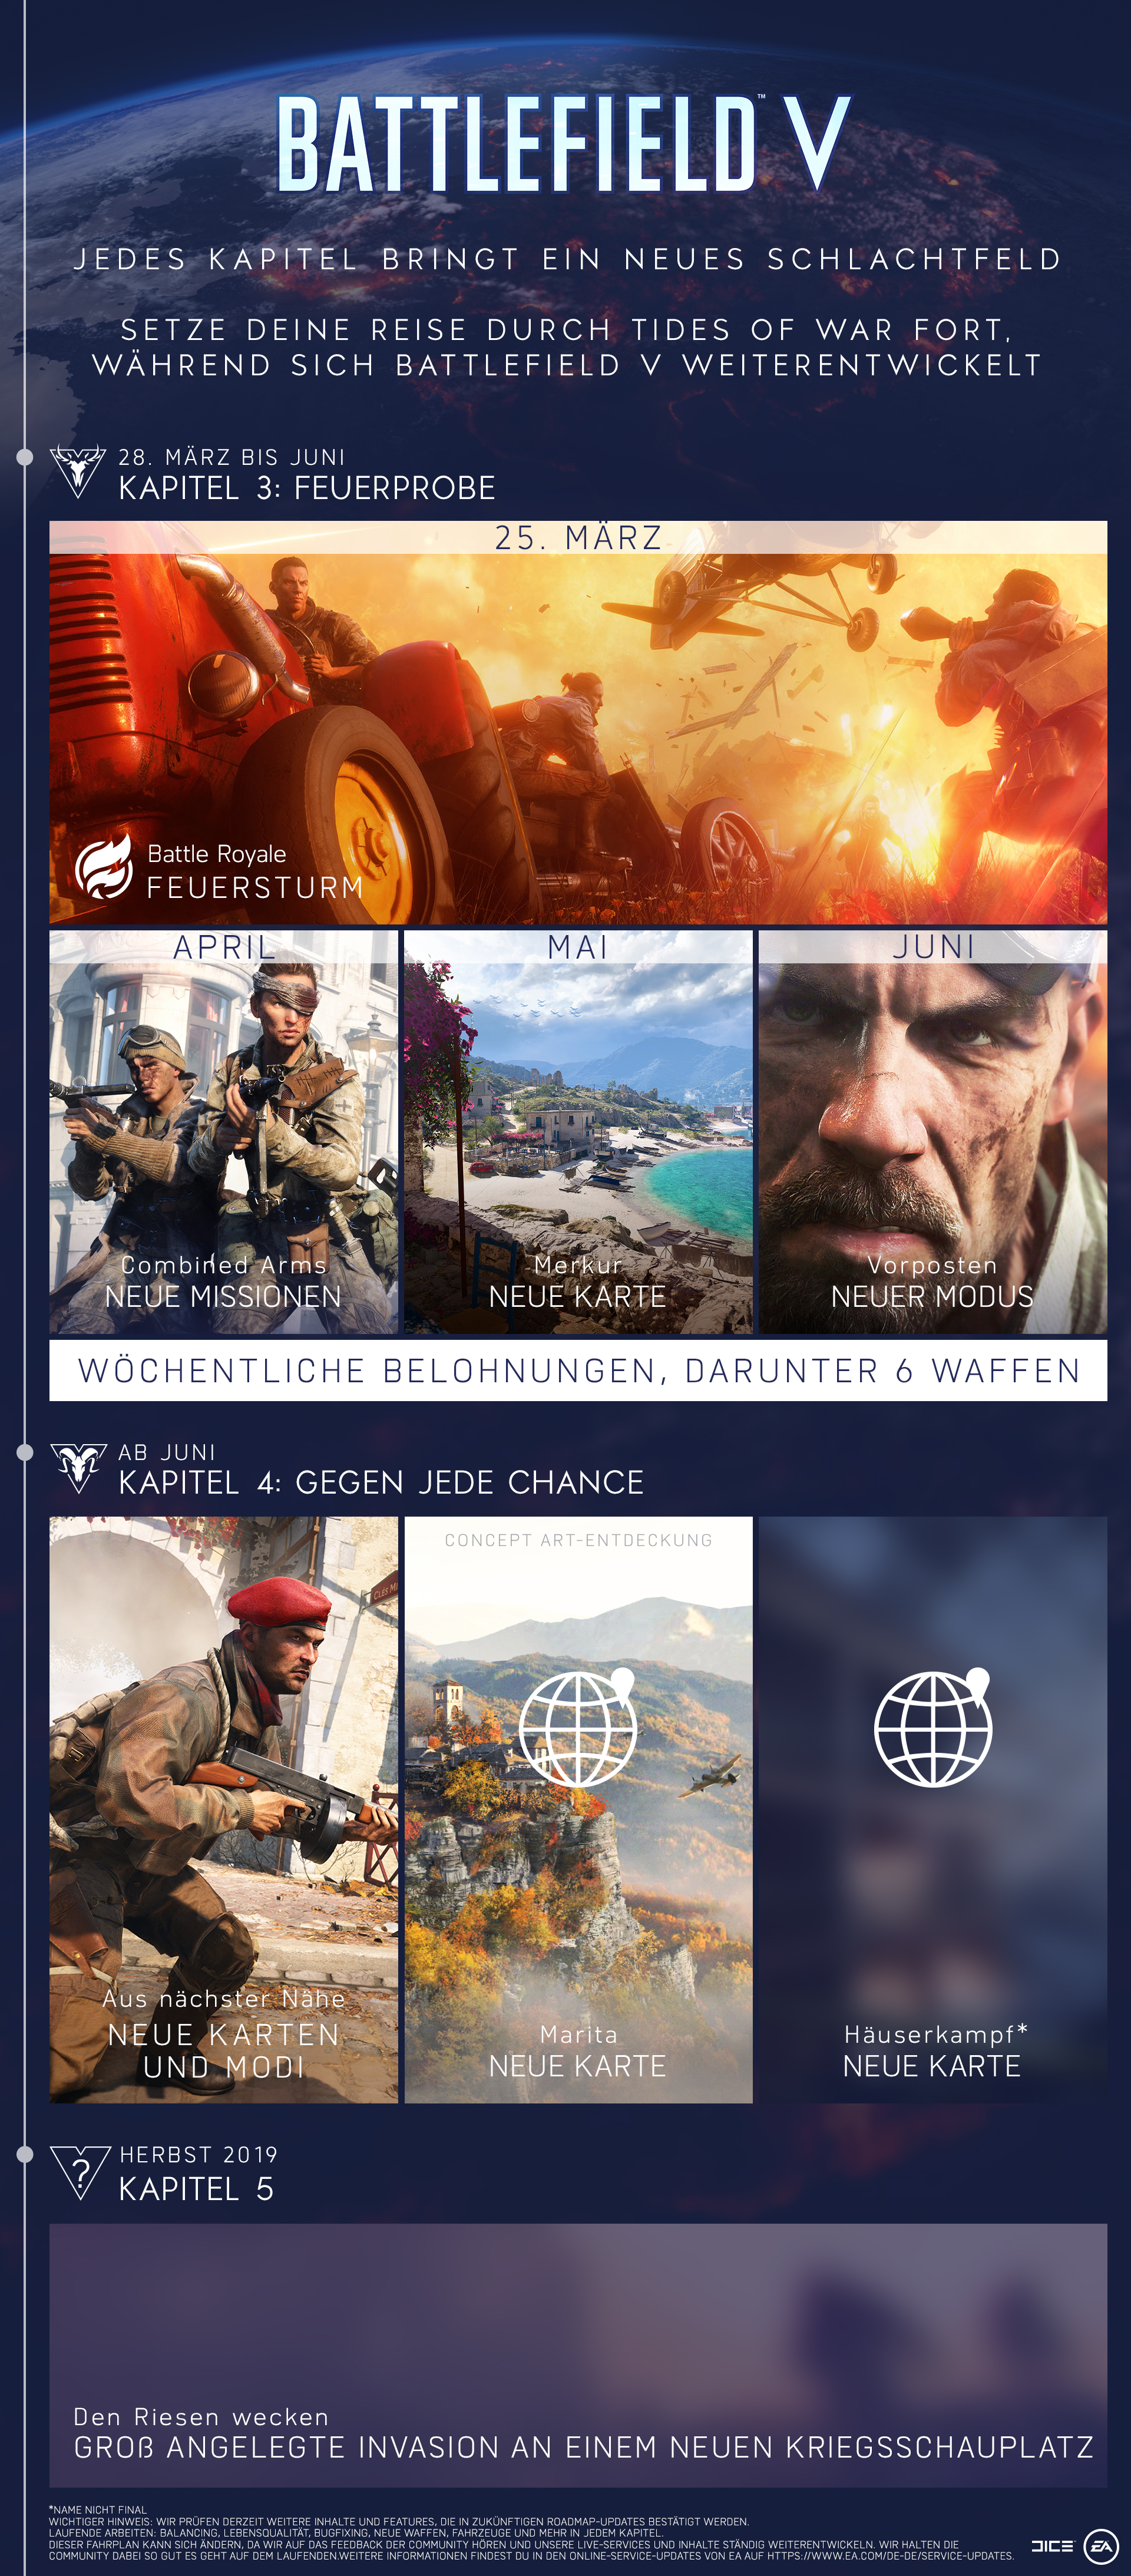 bfv-towcalendarvertical-chapter3-5-updated-de.jpg